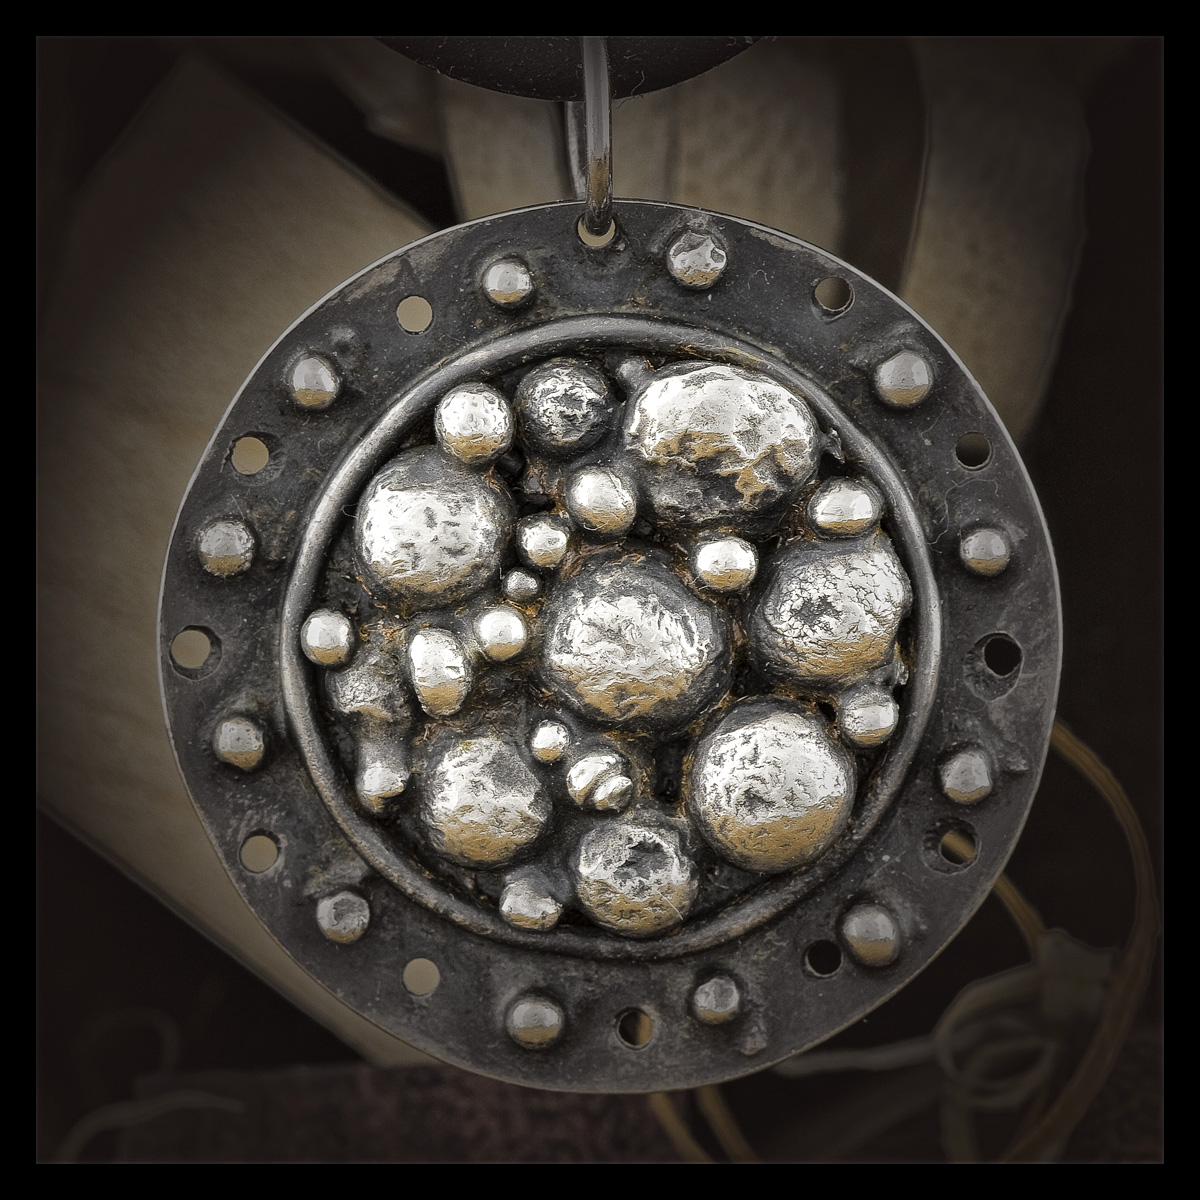 Scarlet's stepping stones medallion. Sterling silver with an antique patina.